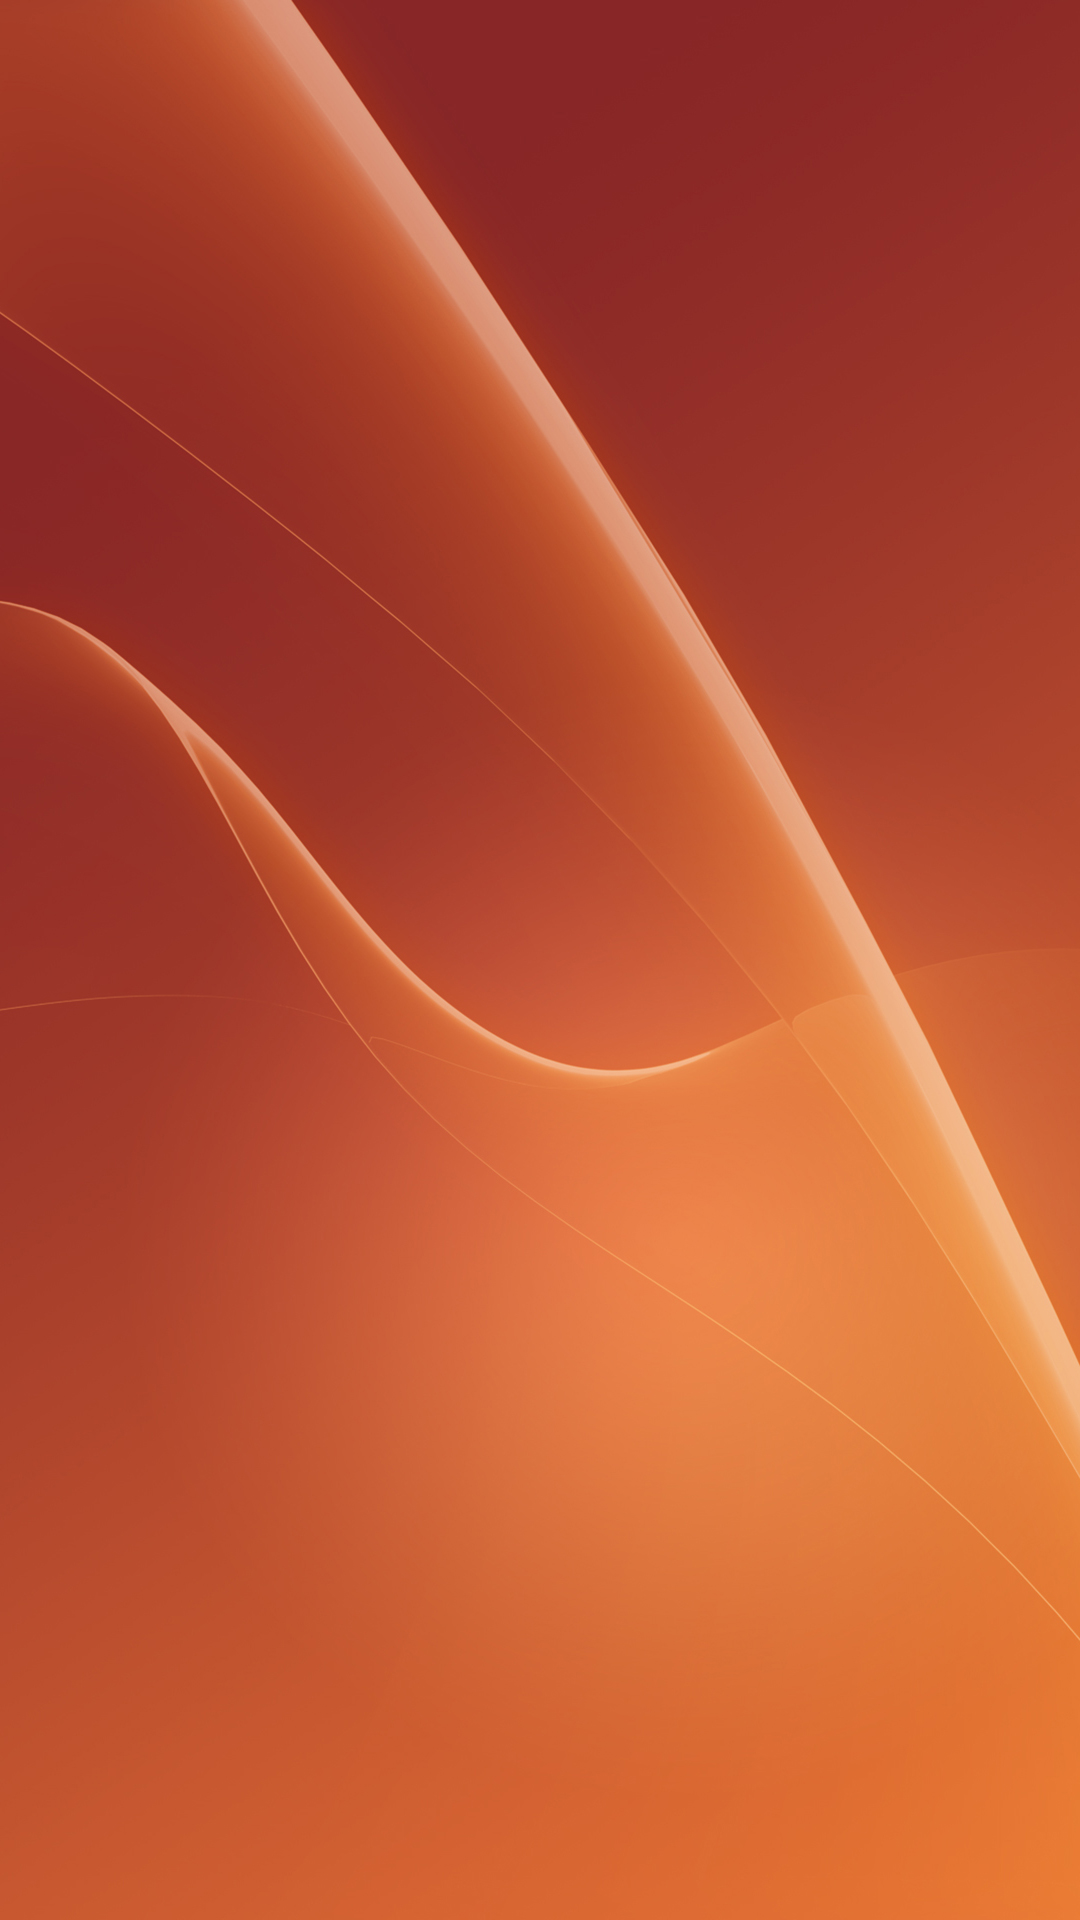 The Official Galaxy S5 Xperia Z2 And LG G Pro 2 Wallpapers Here 1080x1920